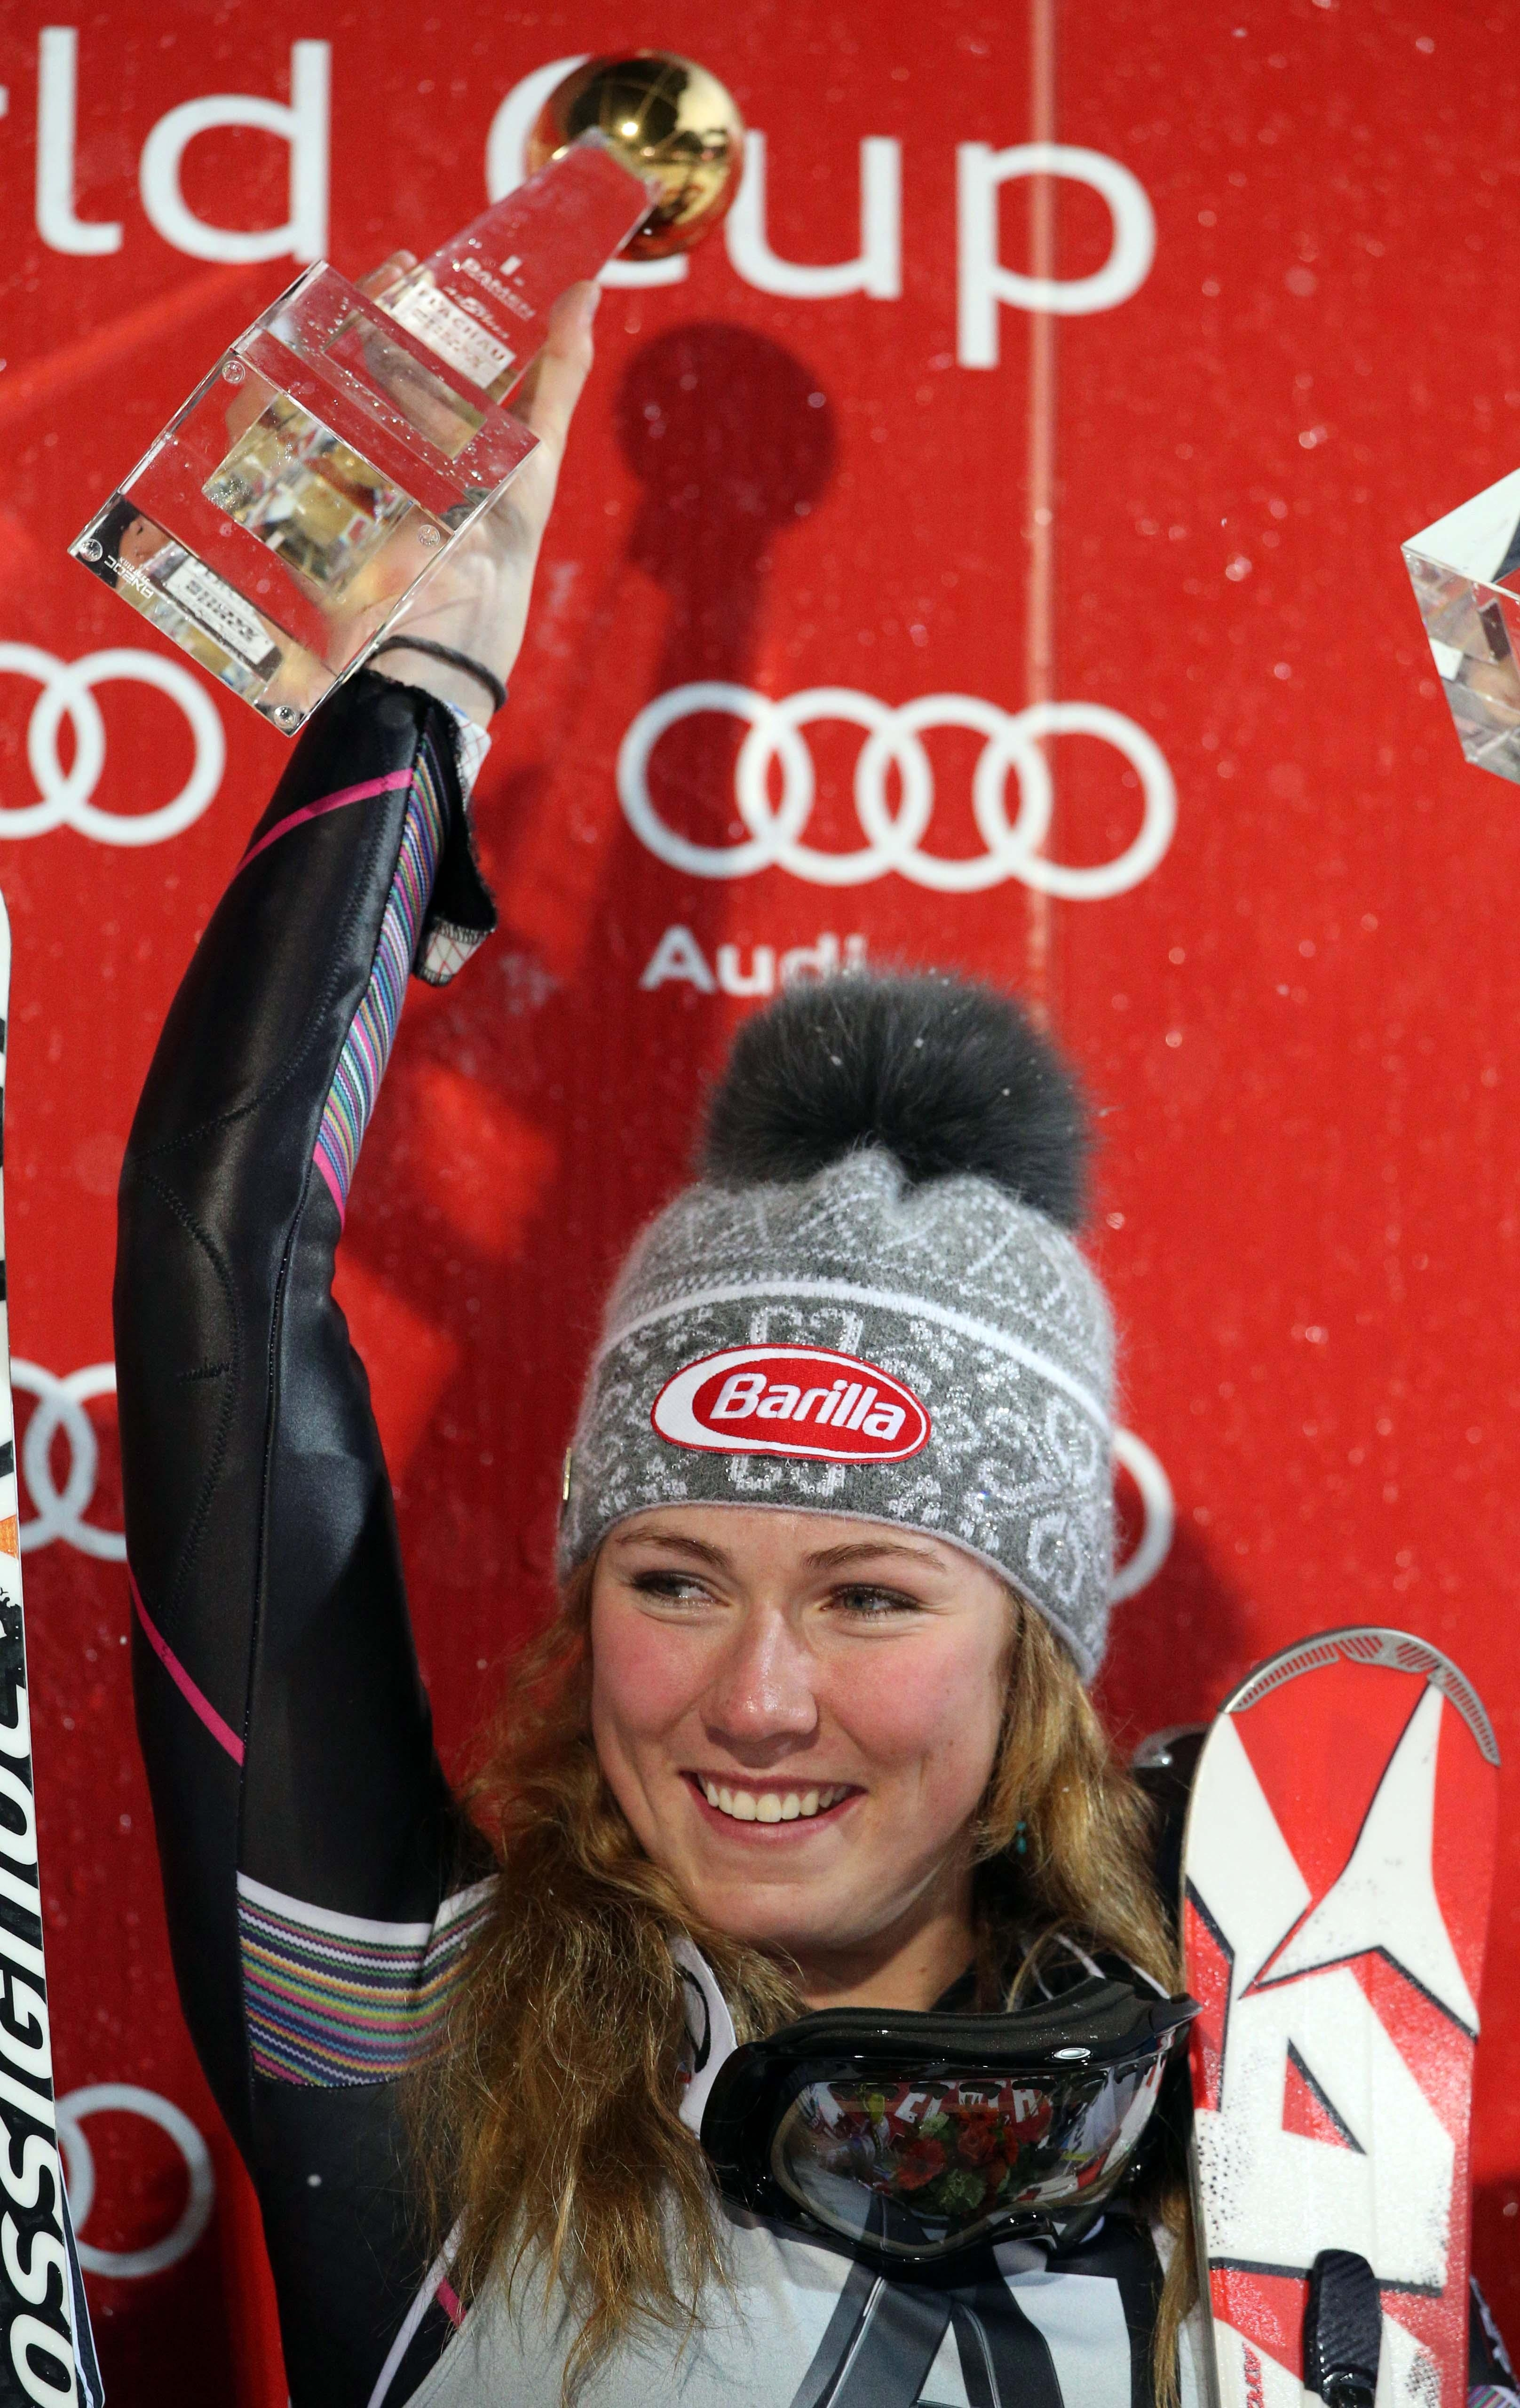 Mikaela Shiffrin is clear favorite for a gold medal in the slalom.